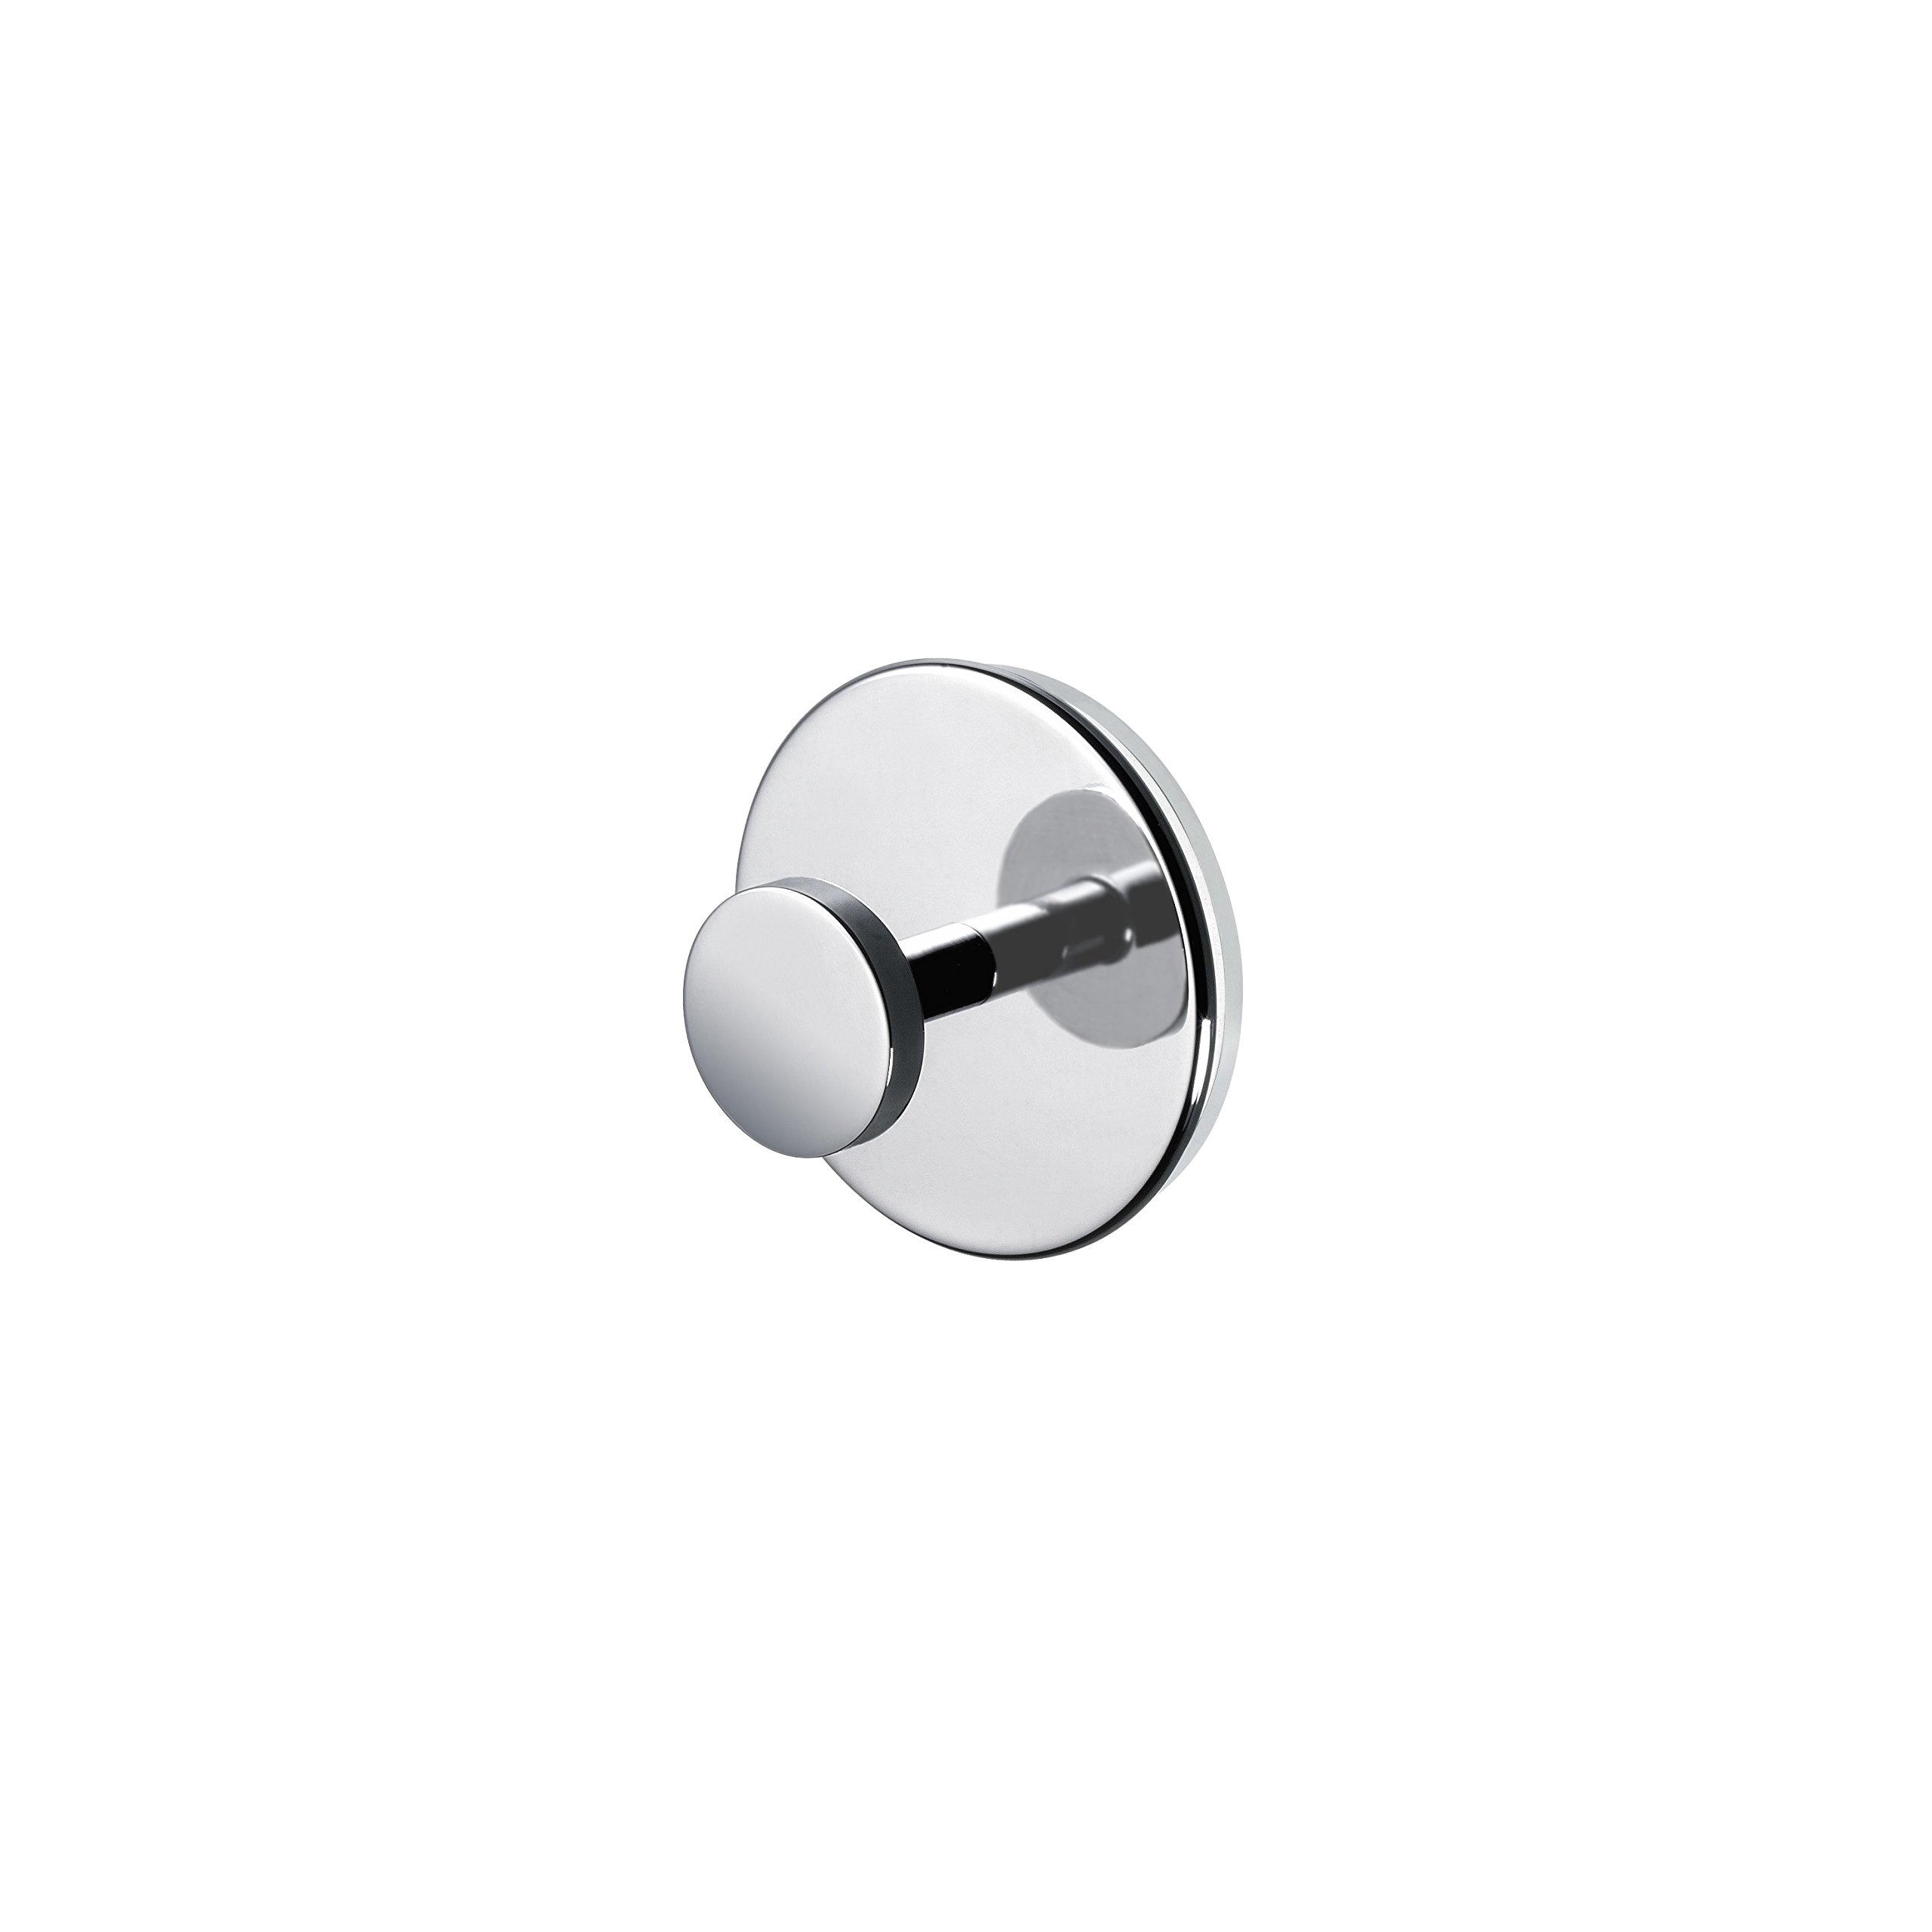 W-Luxury Brass Single Towel Robe Hook/Hanger Suction Cup for Bathroom, Ktchen (Polished Chrome)